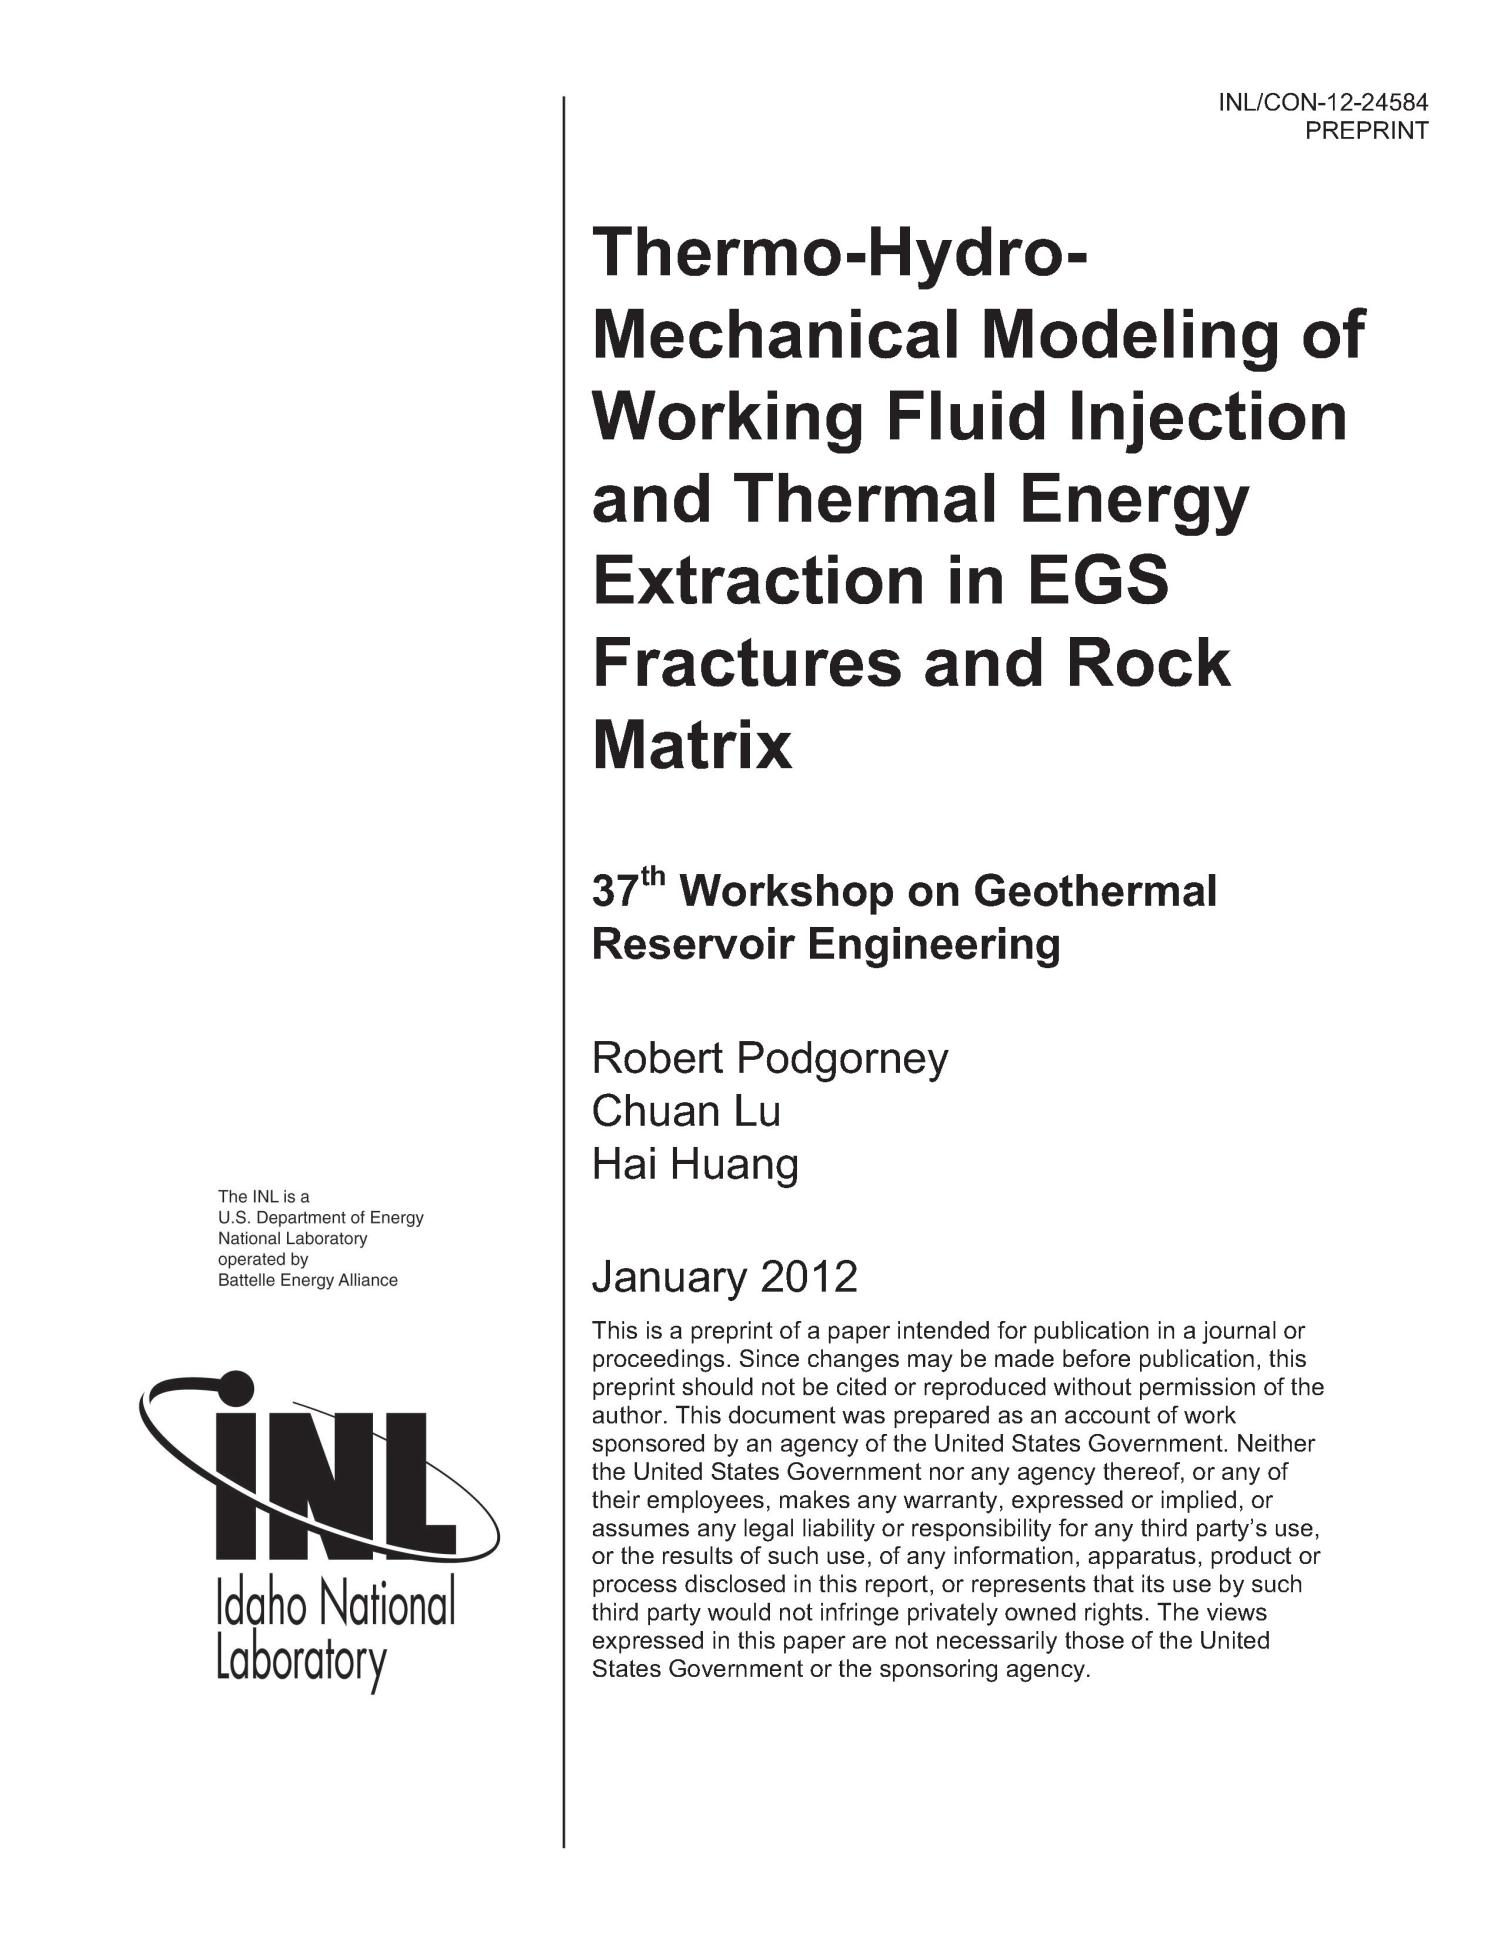 THERMO-HYDRO-MECHANICAL MODELING OF WORKING FLUID INJECTION AND THERMAL ENERGY EXTRACTION IN EGS FRACTURES AND ROCK MATRIX                                                                                                      [Sequence #]: 1 of 11